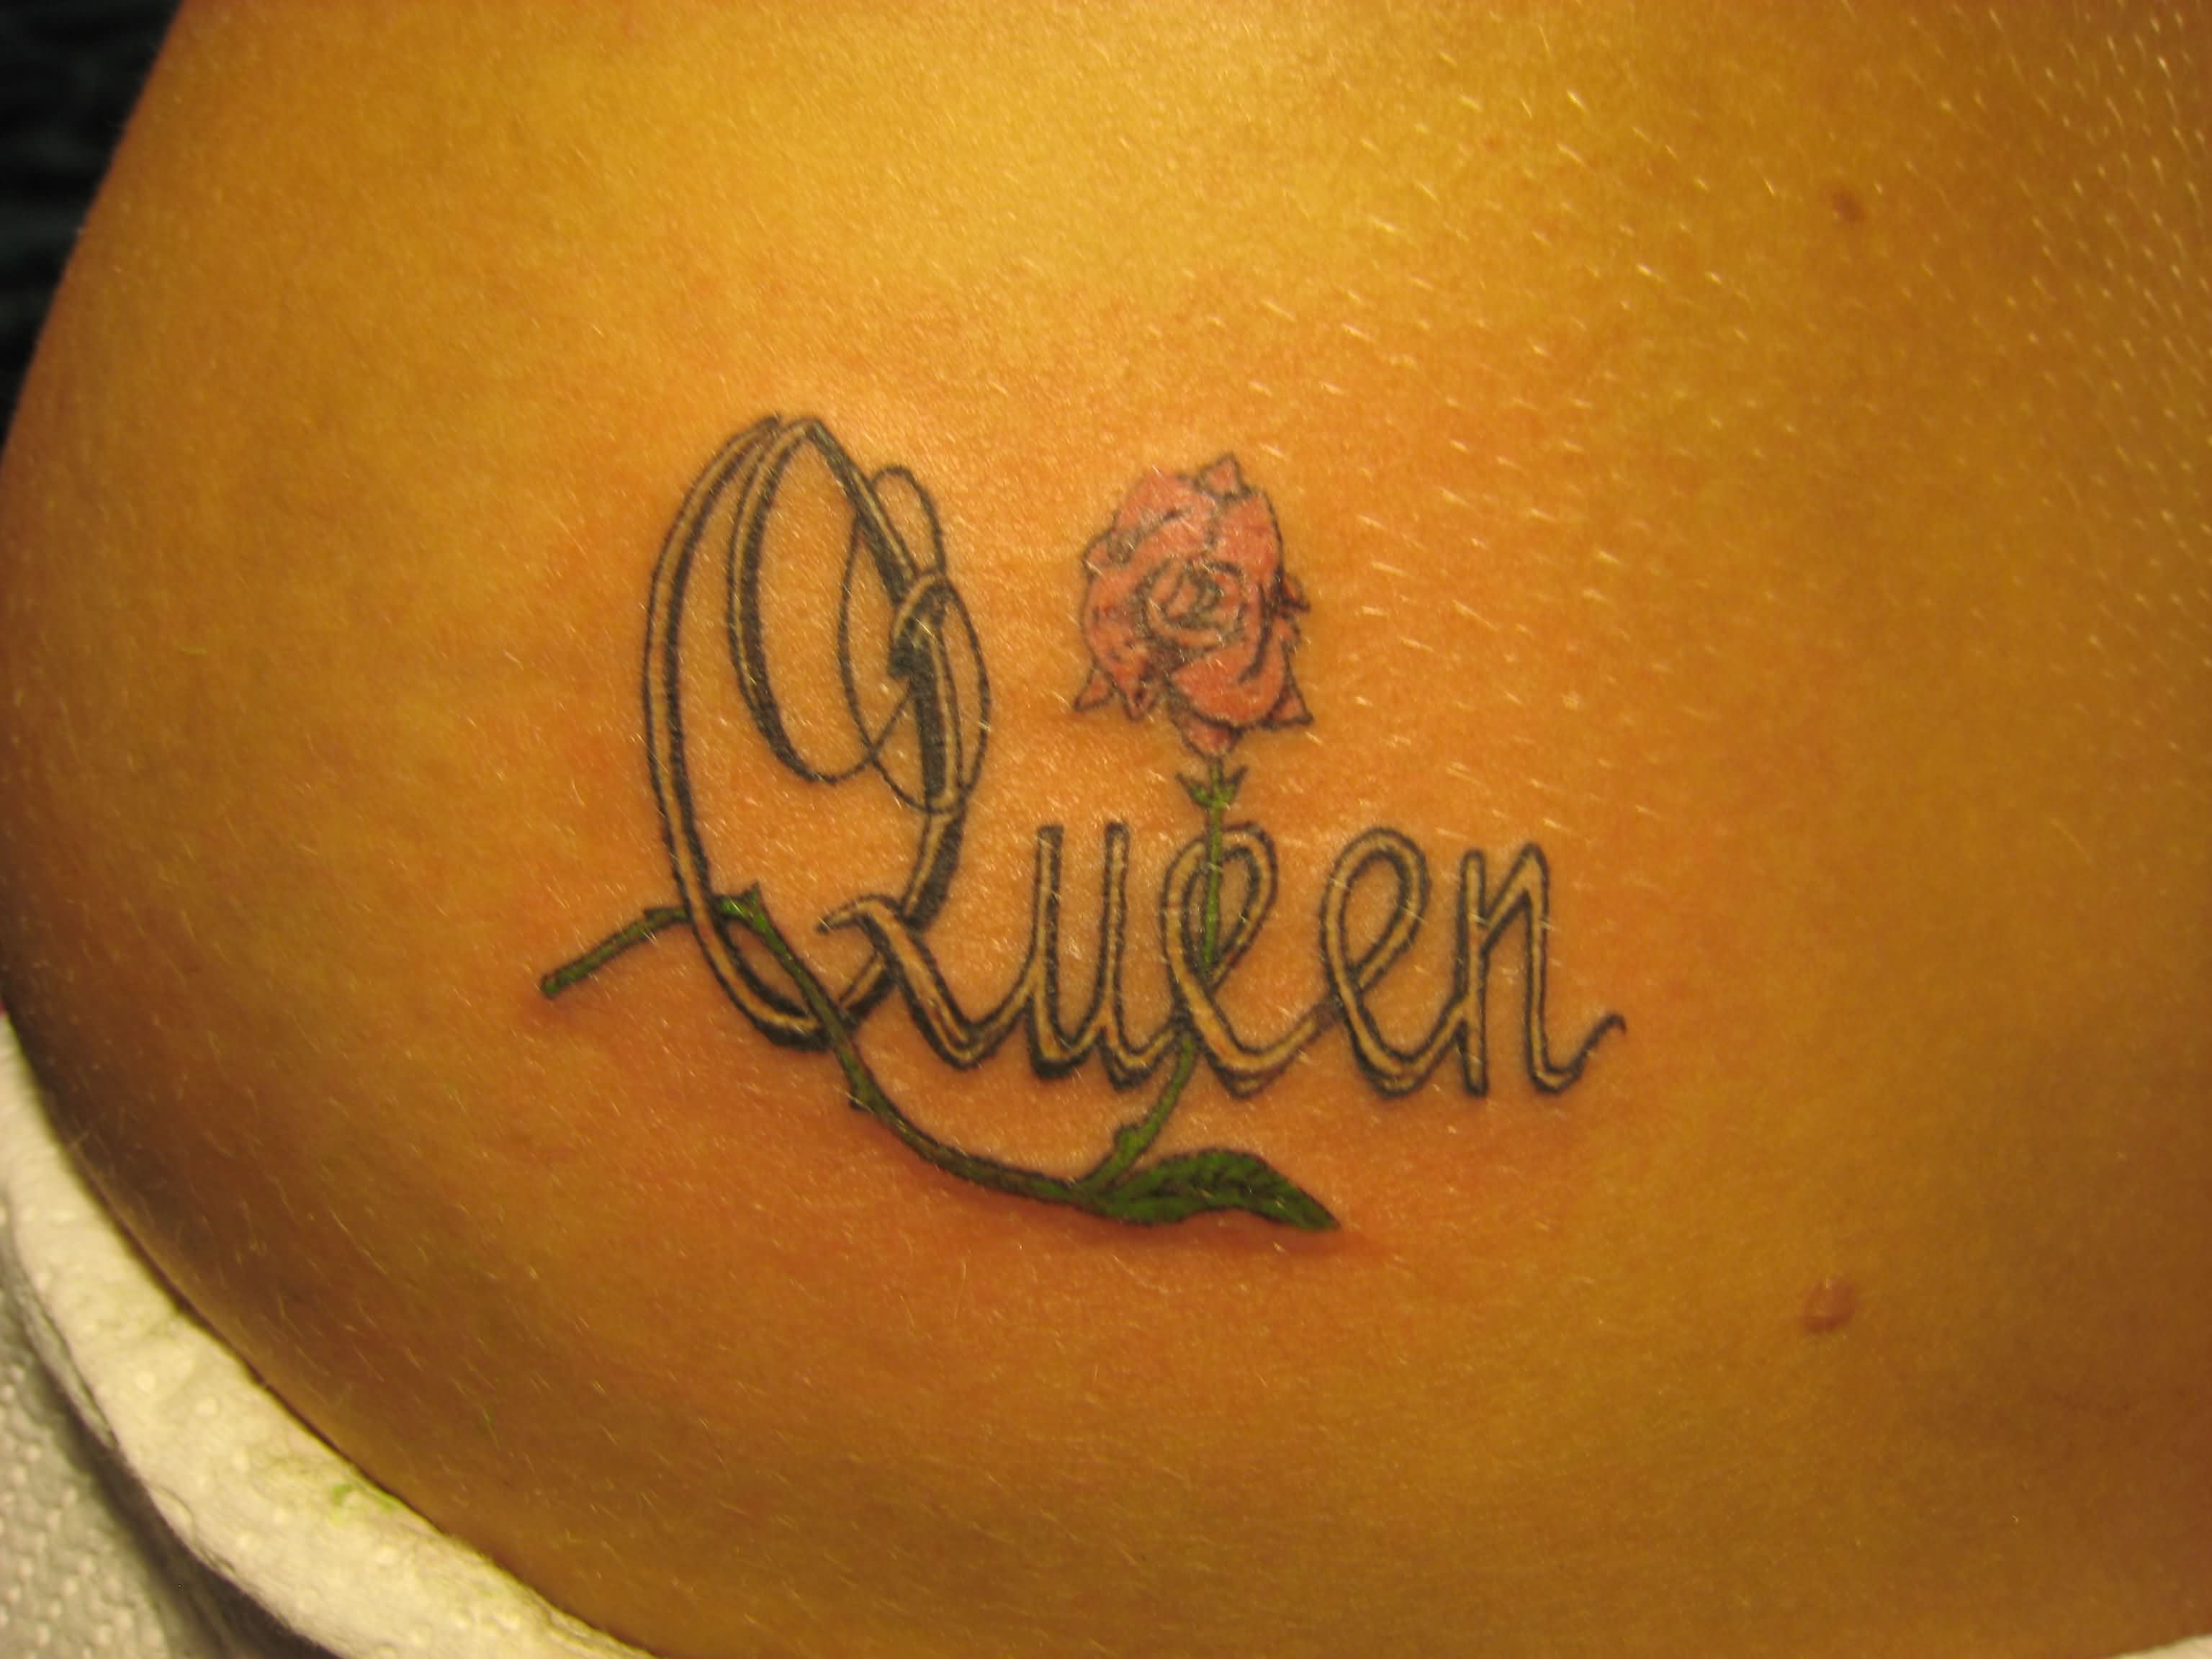 Queen Lettering With Rose Tattoo Design